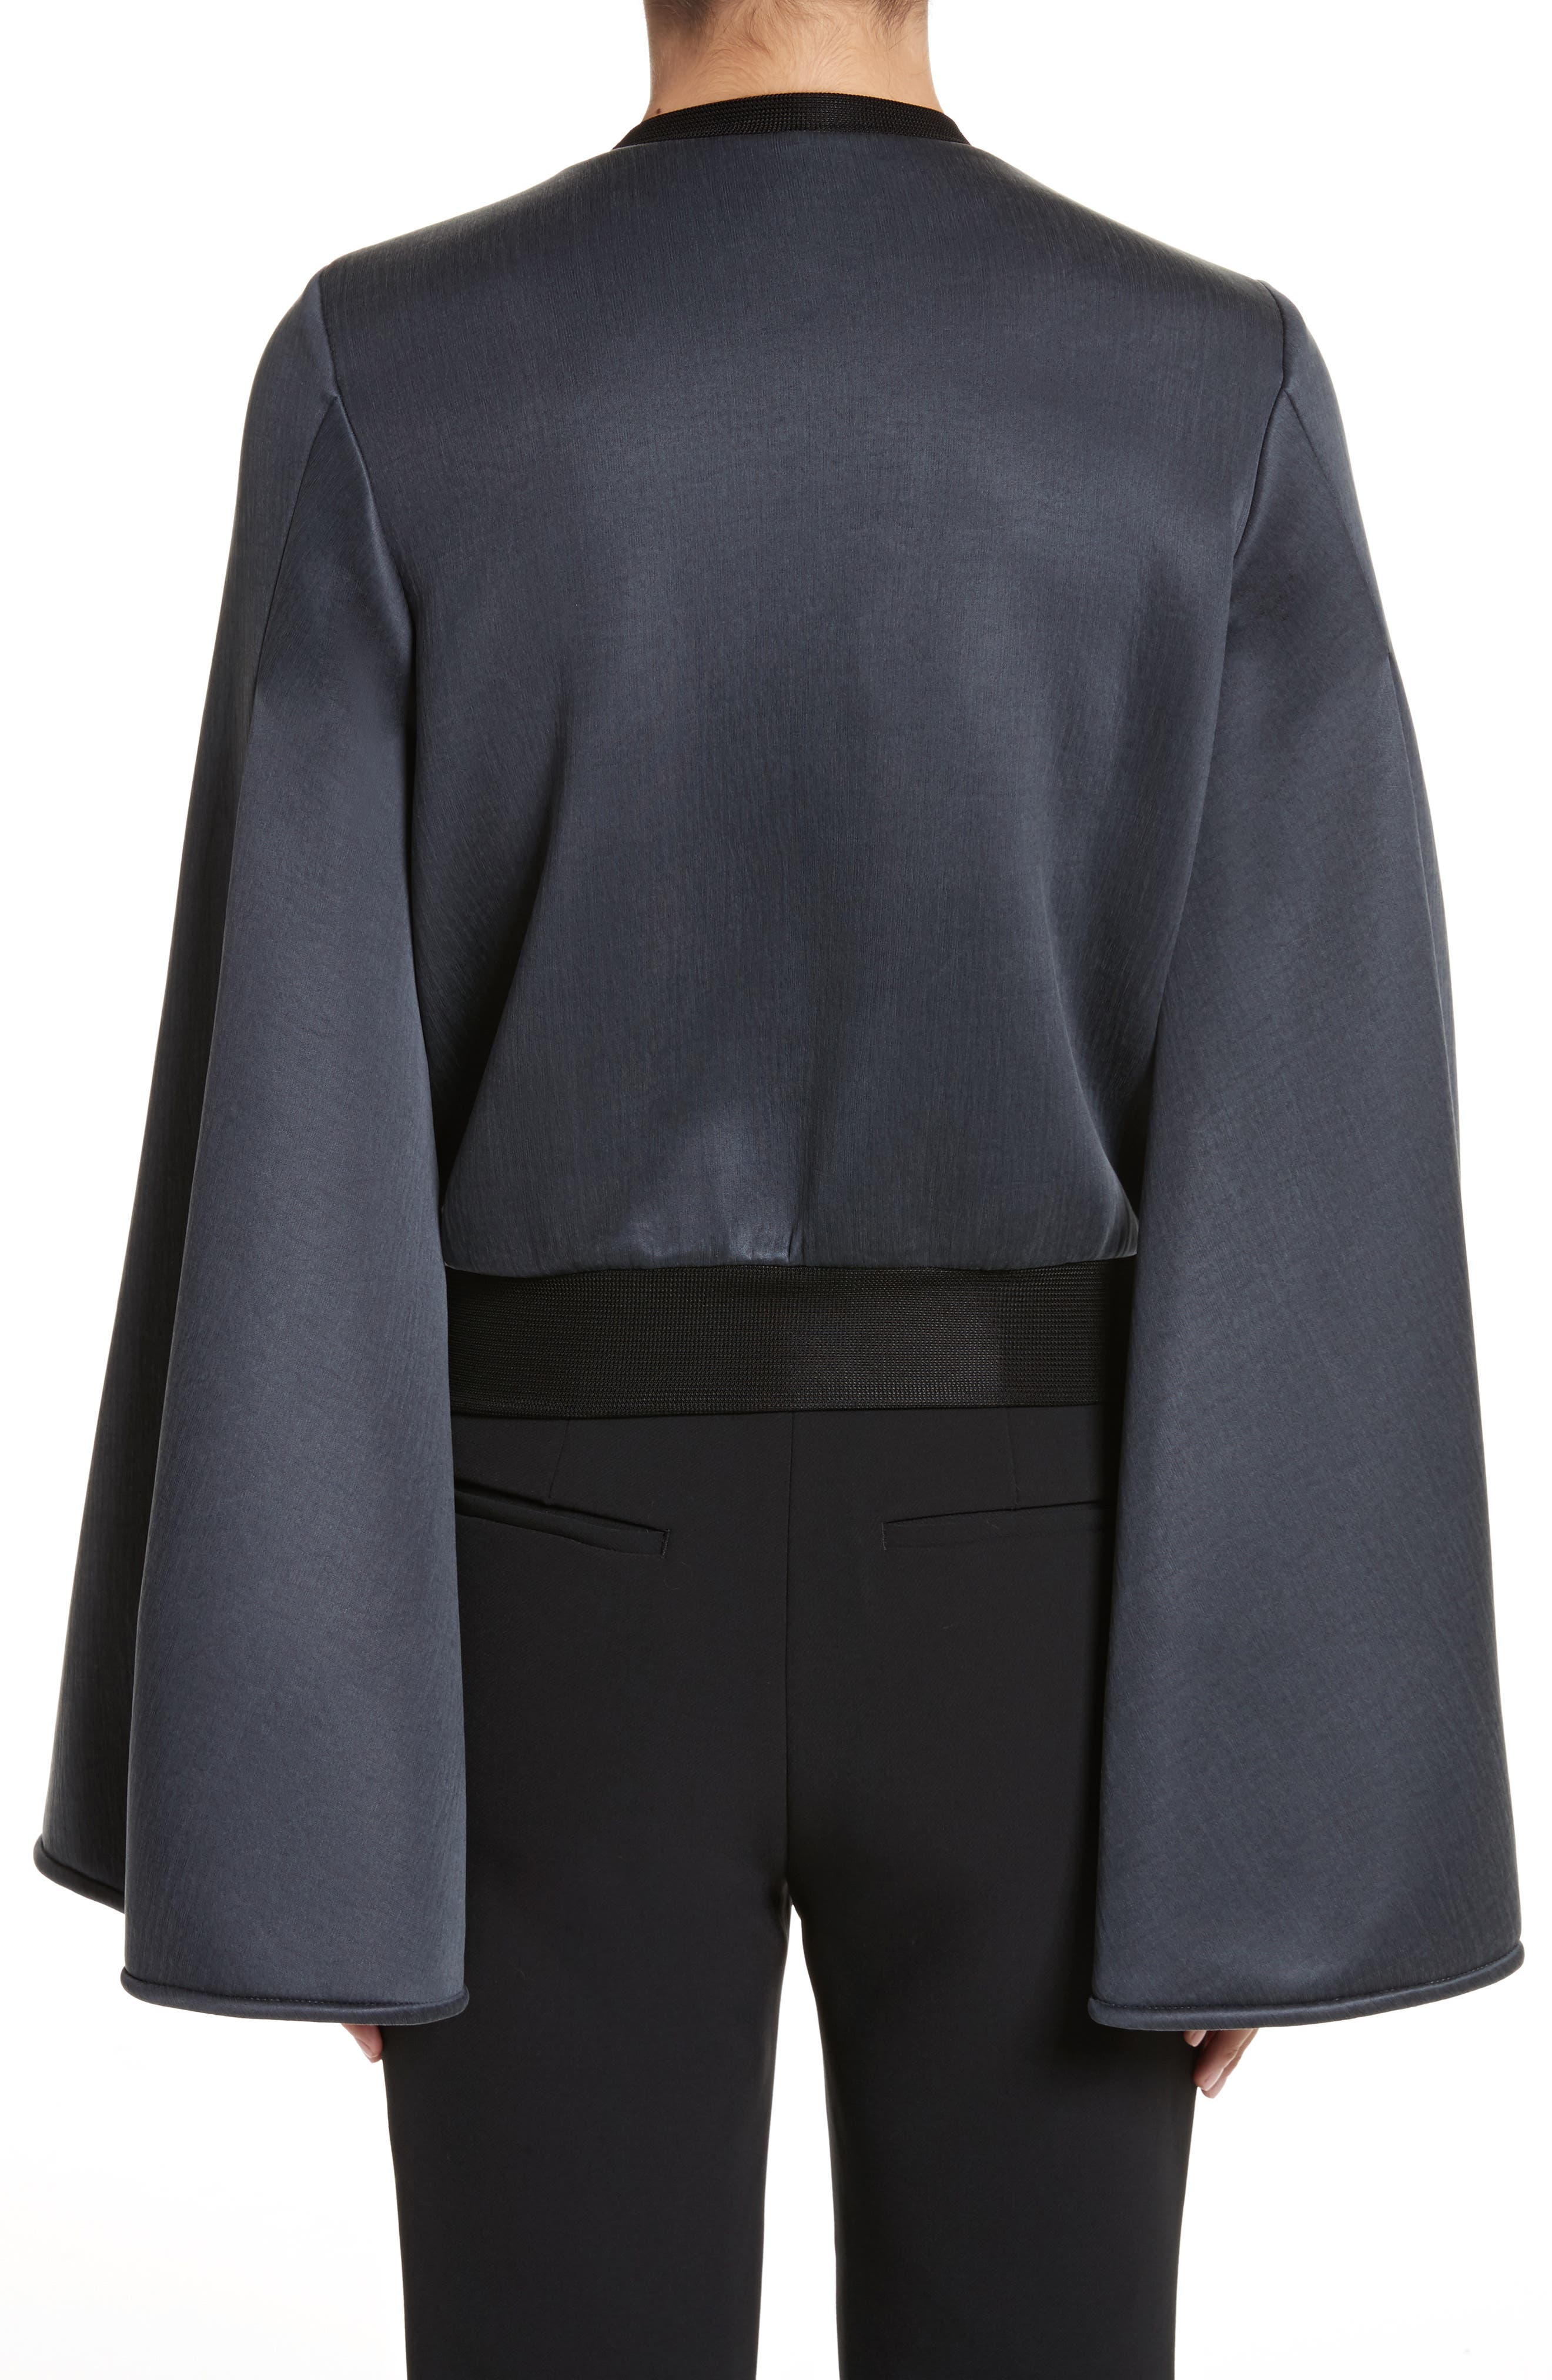 Immortal Flare Sleeve Sweater,                             Alternate thumbnail 2, color,                             Charcoal Navy